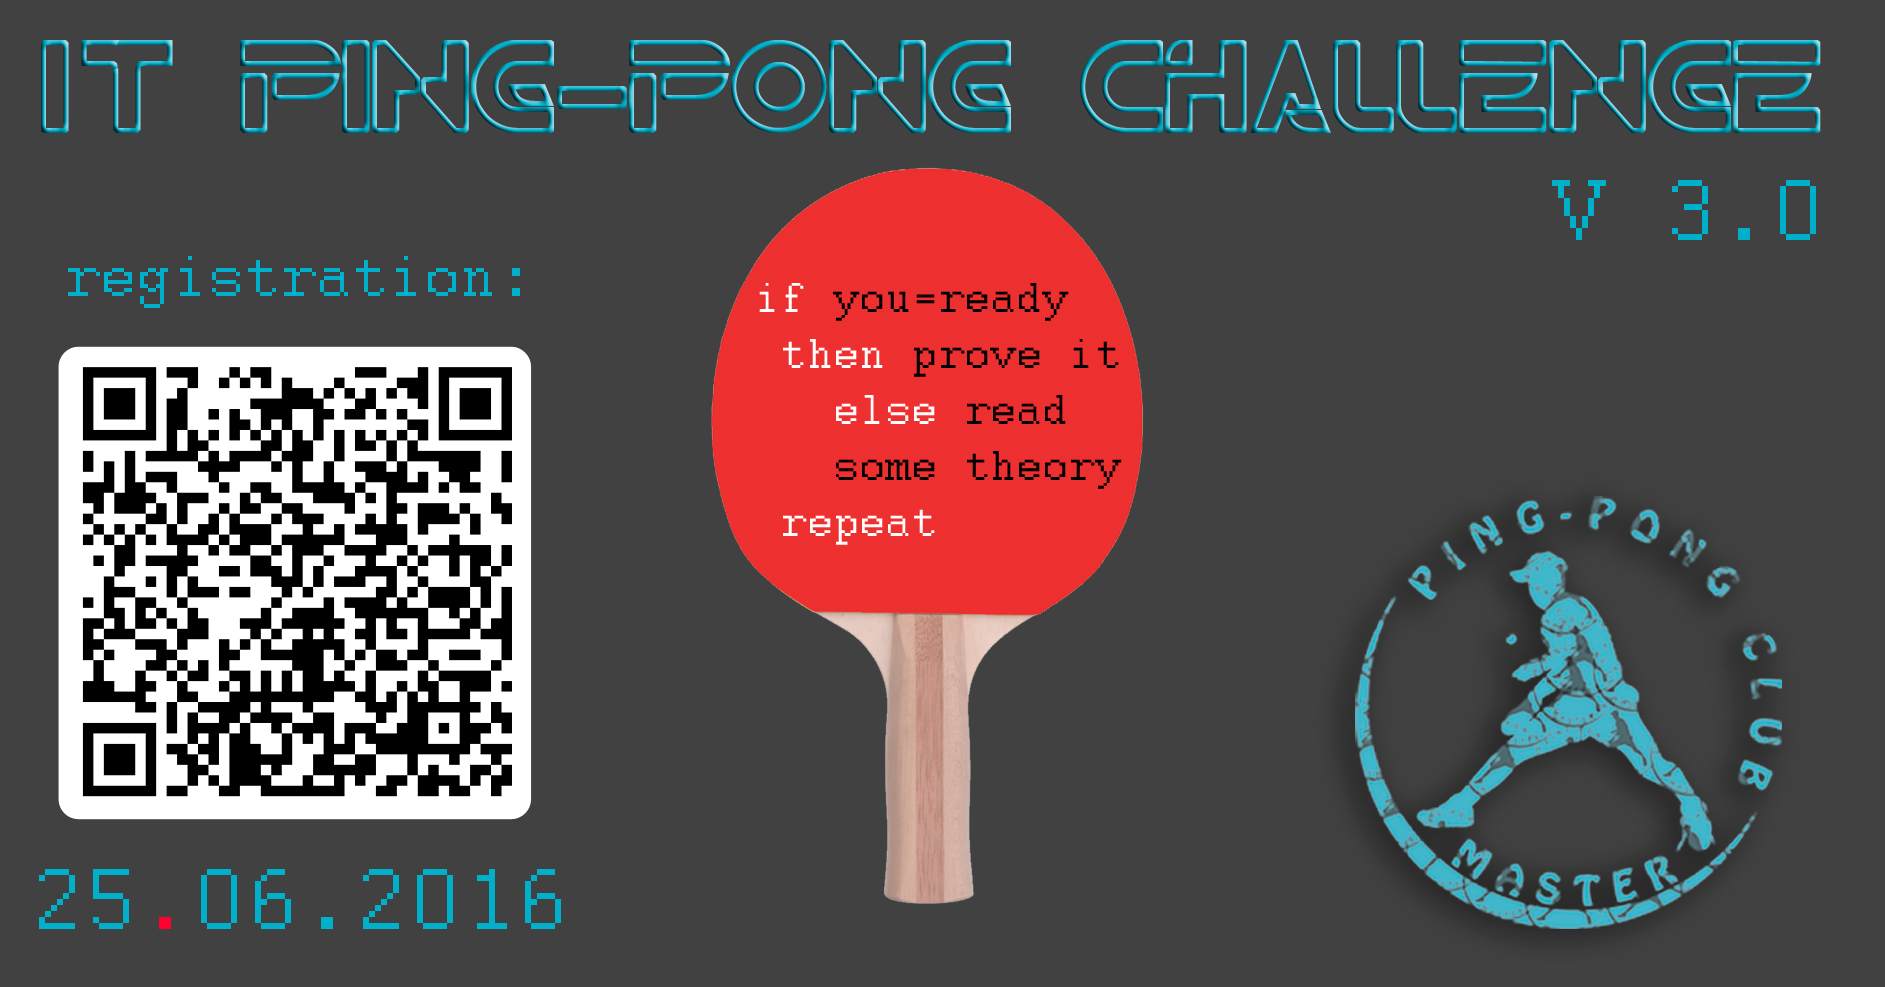 it_ping-pong_challenge_3.0